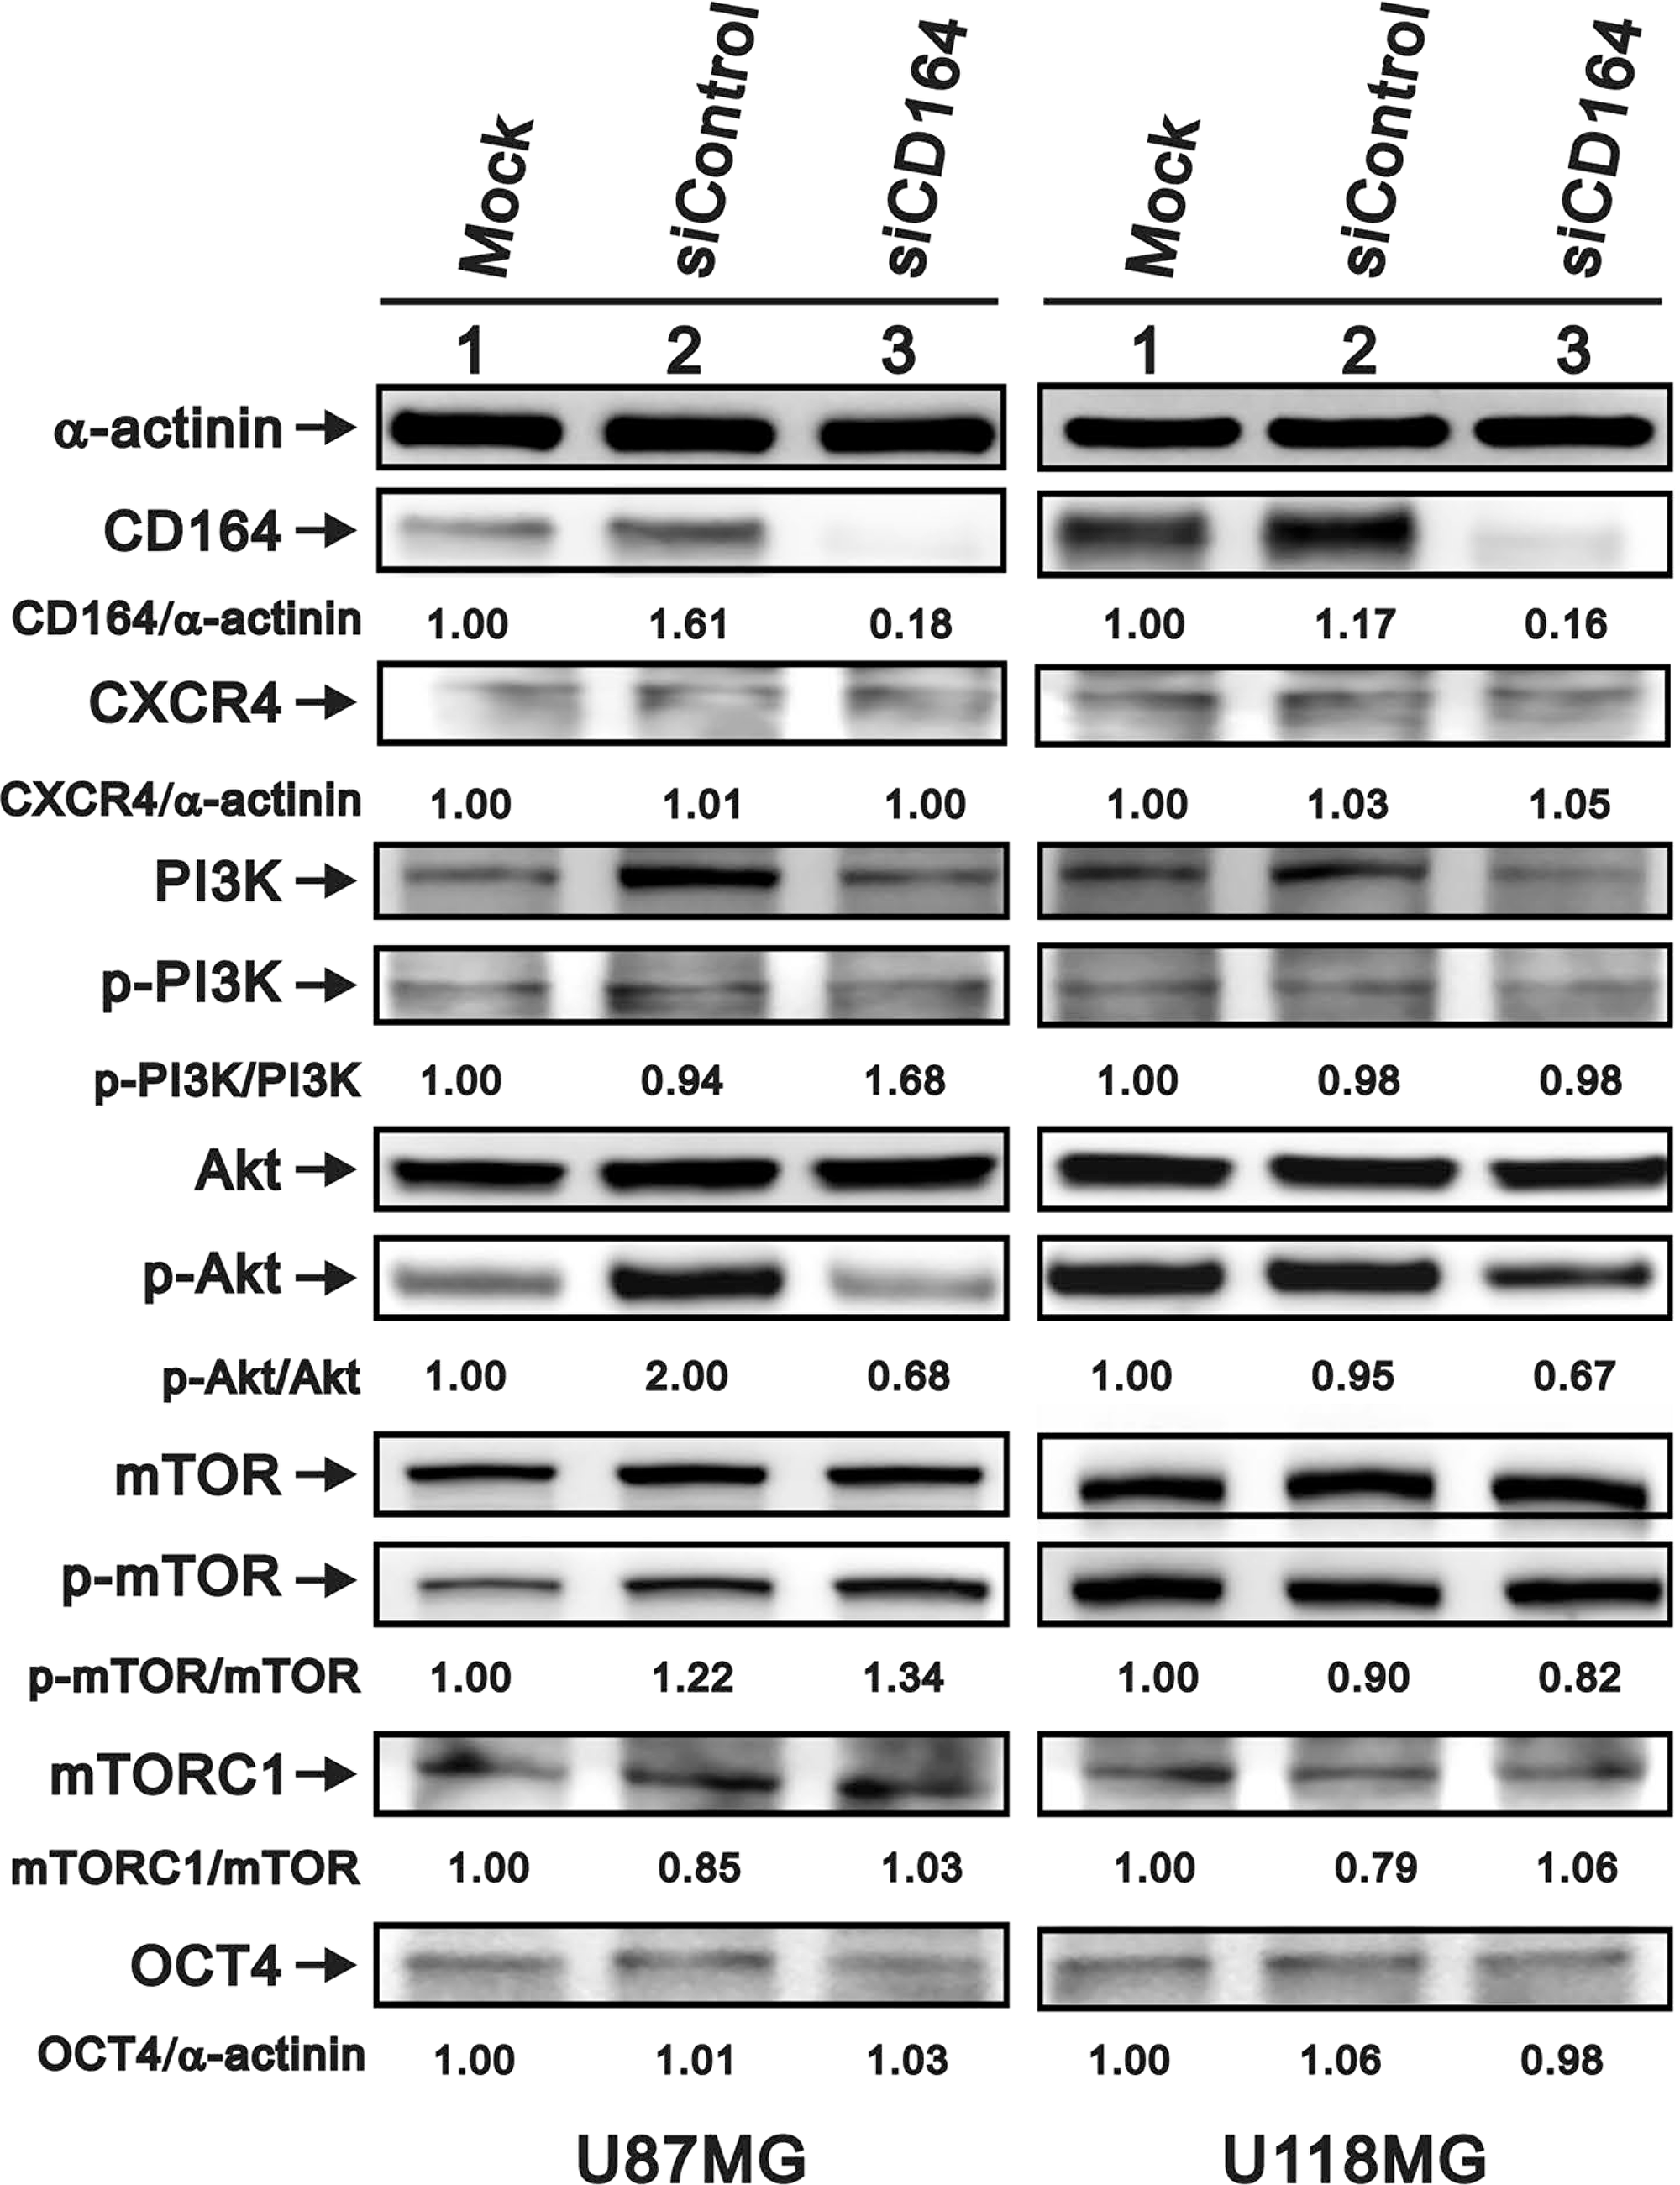 Effects of CD164 knockdown on the CXCR4/PI3K/Akt signaling pathway.